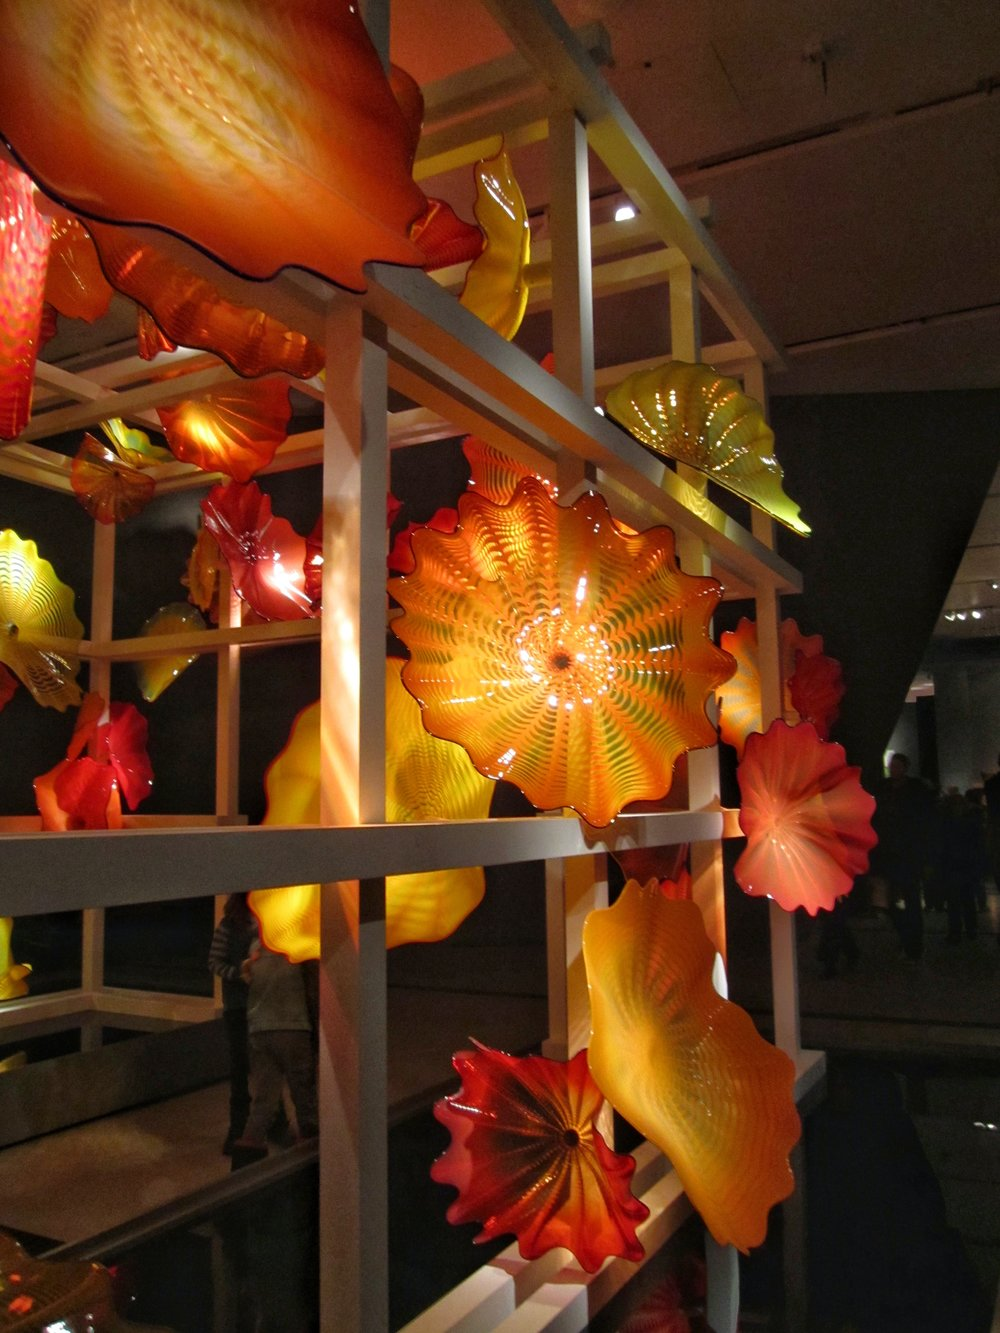 Detail of Chihuly's  Persian Trellis installation